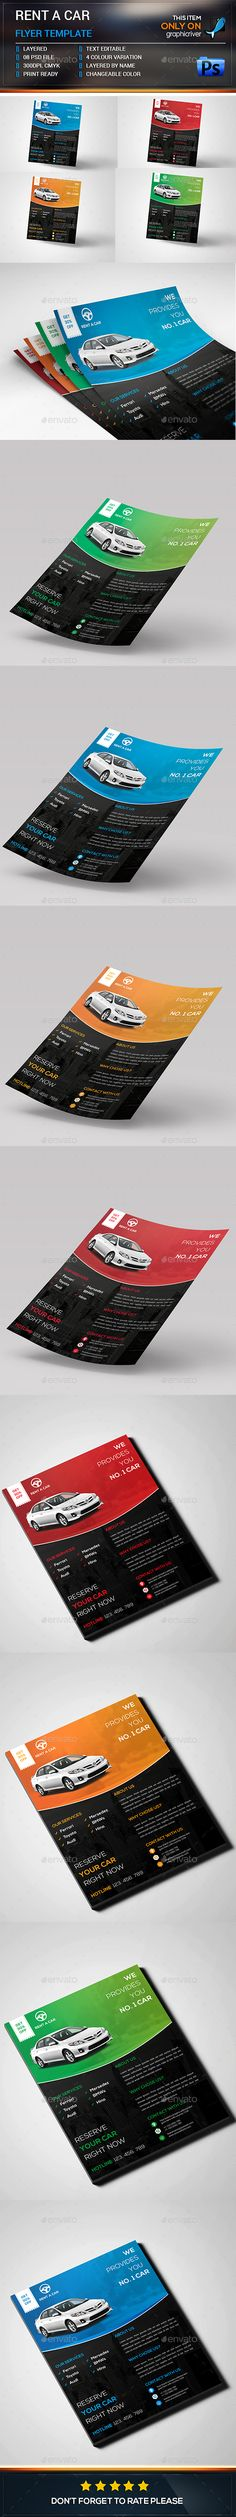 Car Sale Flyer Flyer template, Billboard design and Font logo - car flyer template